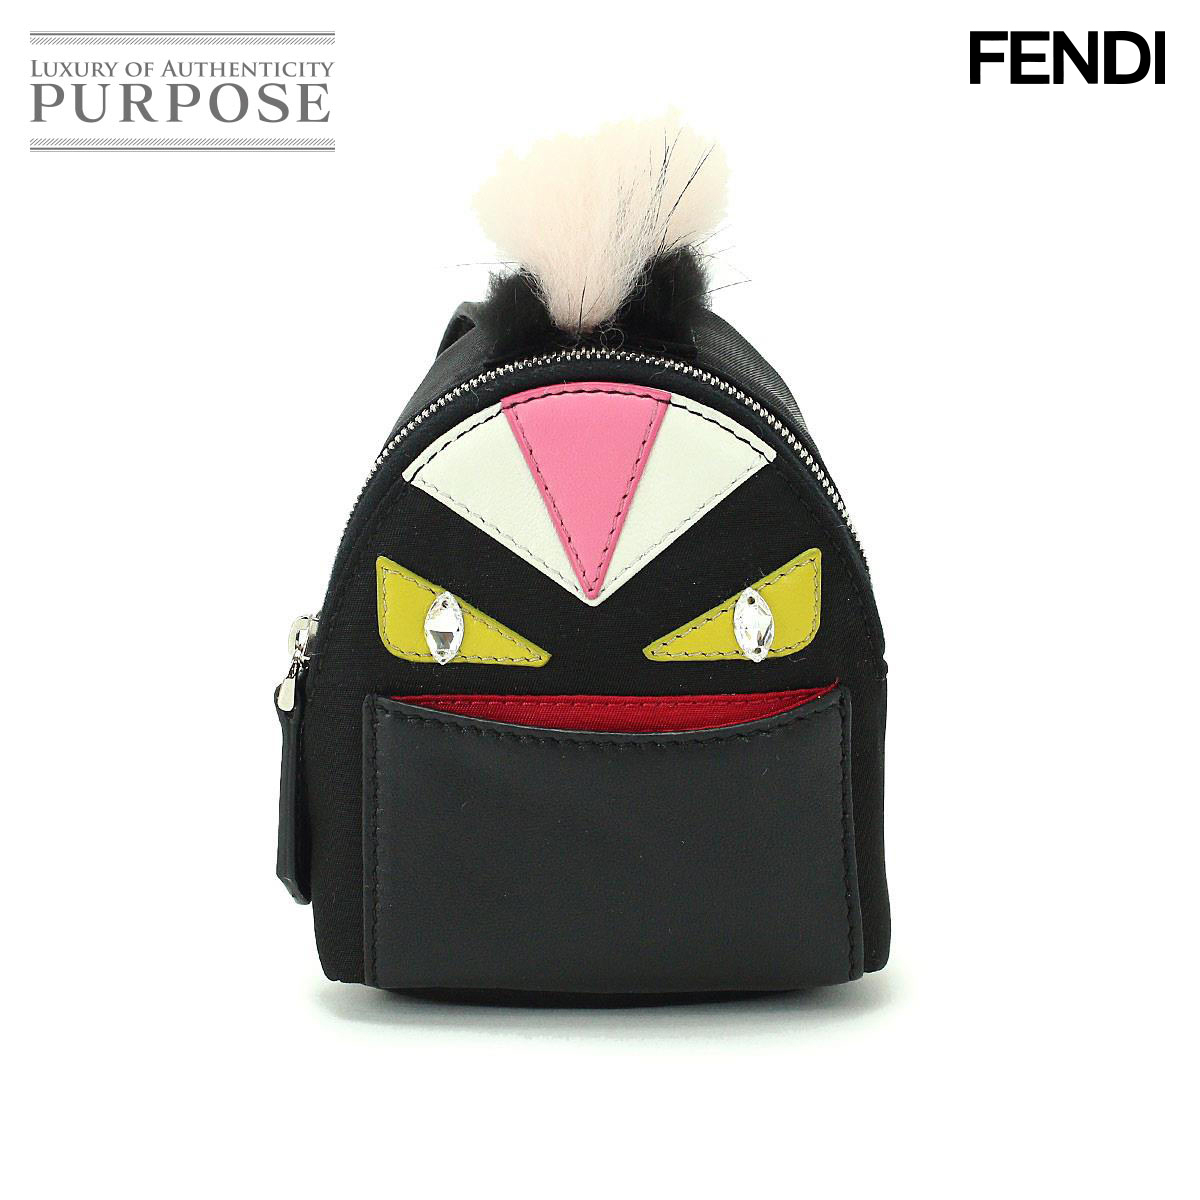 Purpose Inc  Fendi FENDI backpack charm monster bugs fur key ring 7AR457  7787788609ad9